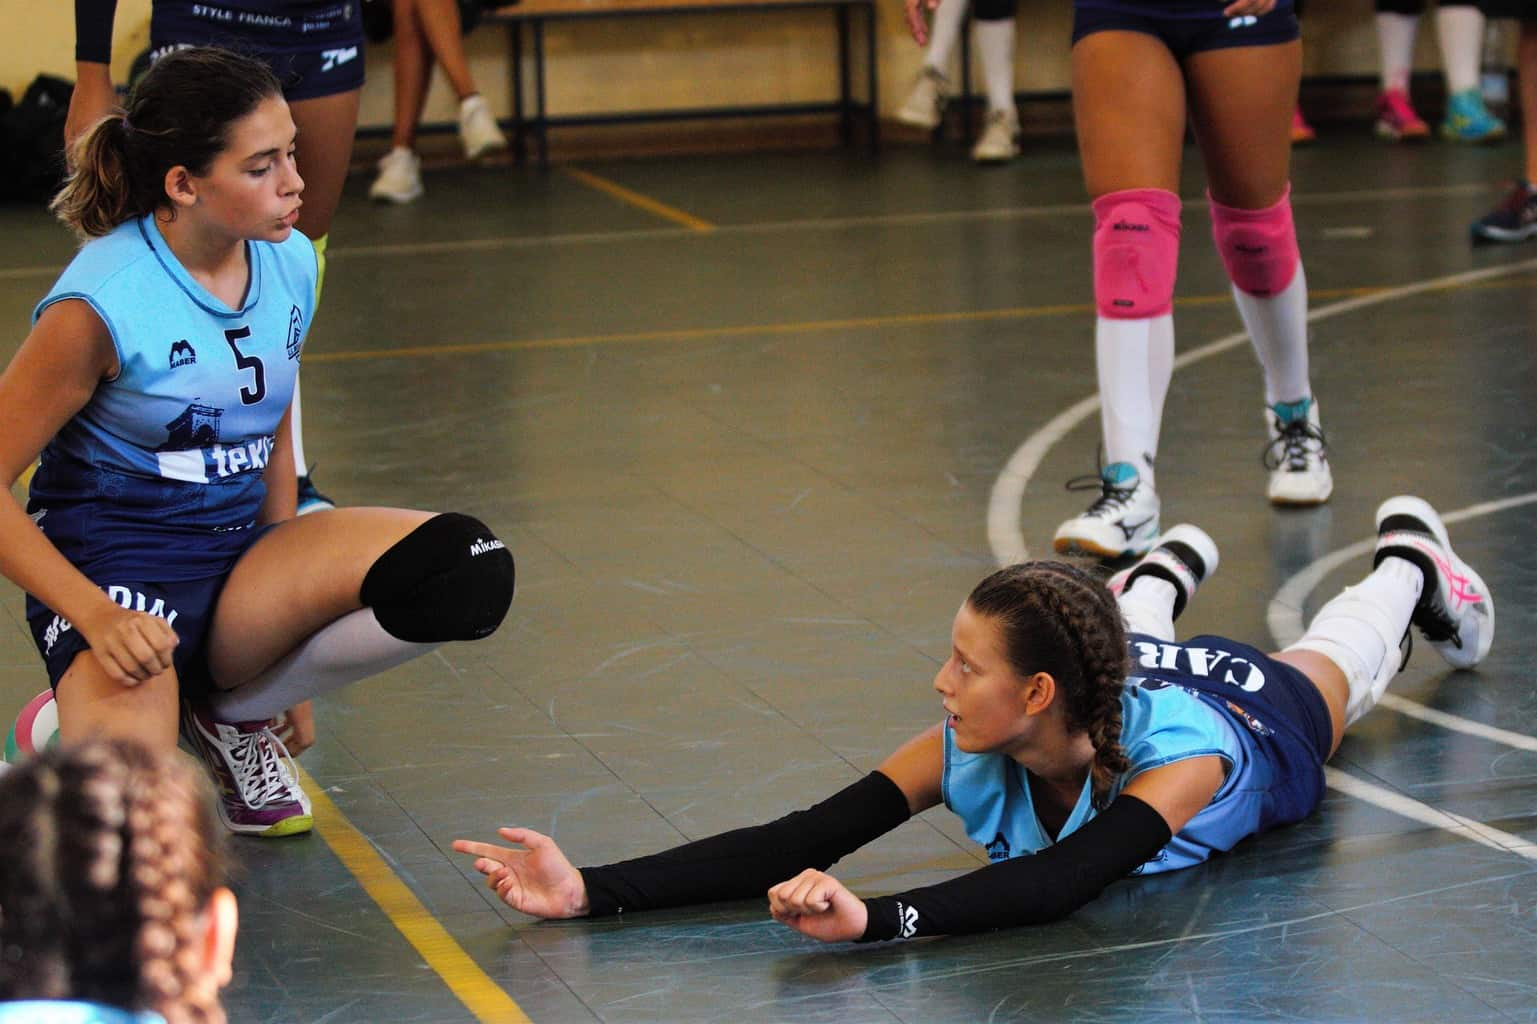 Volleyball players resting on the floor